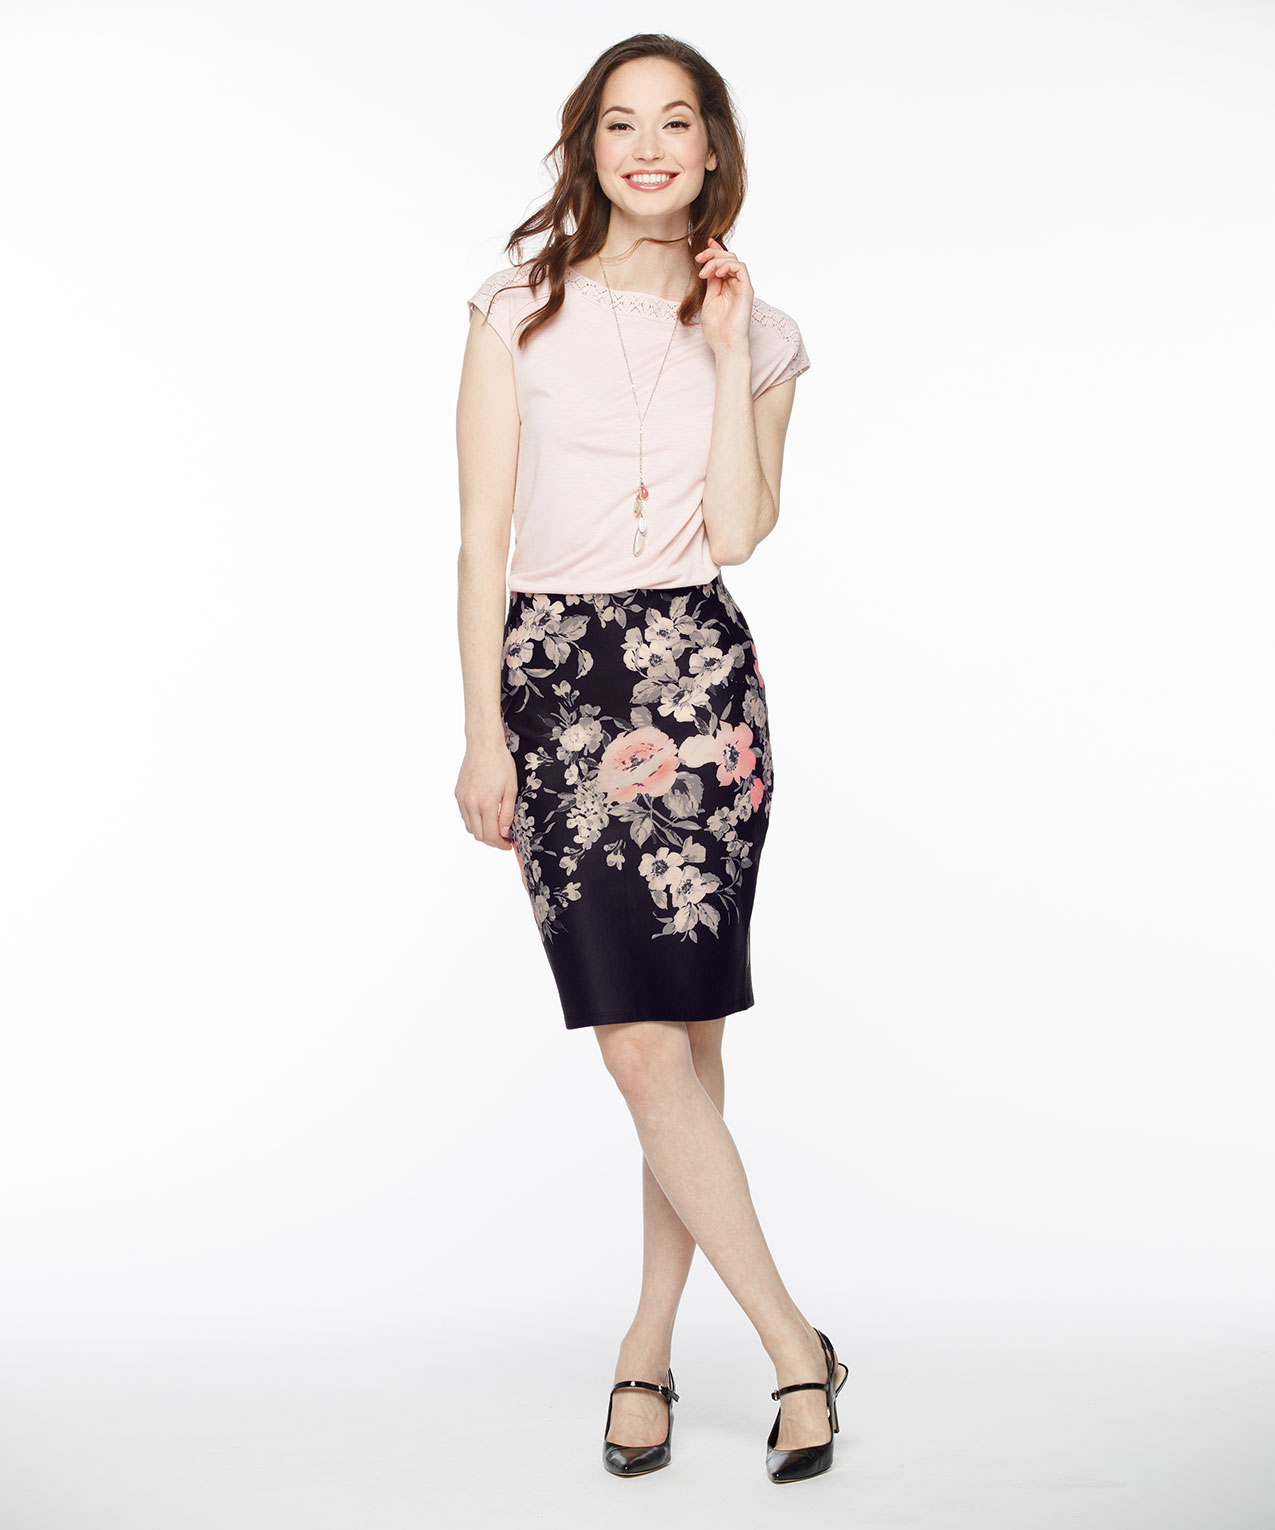 Because of the tight cut closeness to the body, most cheap pencil skirts have a slit or pleat in the rear for easier mobility, while others have a large slit in the front or on both sides. They are made using a large selection of fabrics, leather, suede, cotton, denim, jersey knit, polyester and linen.